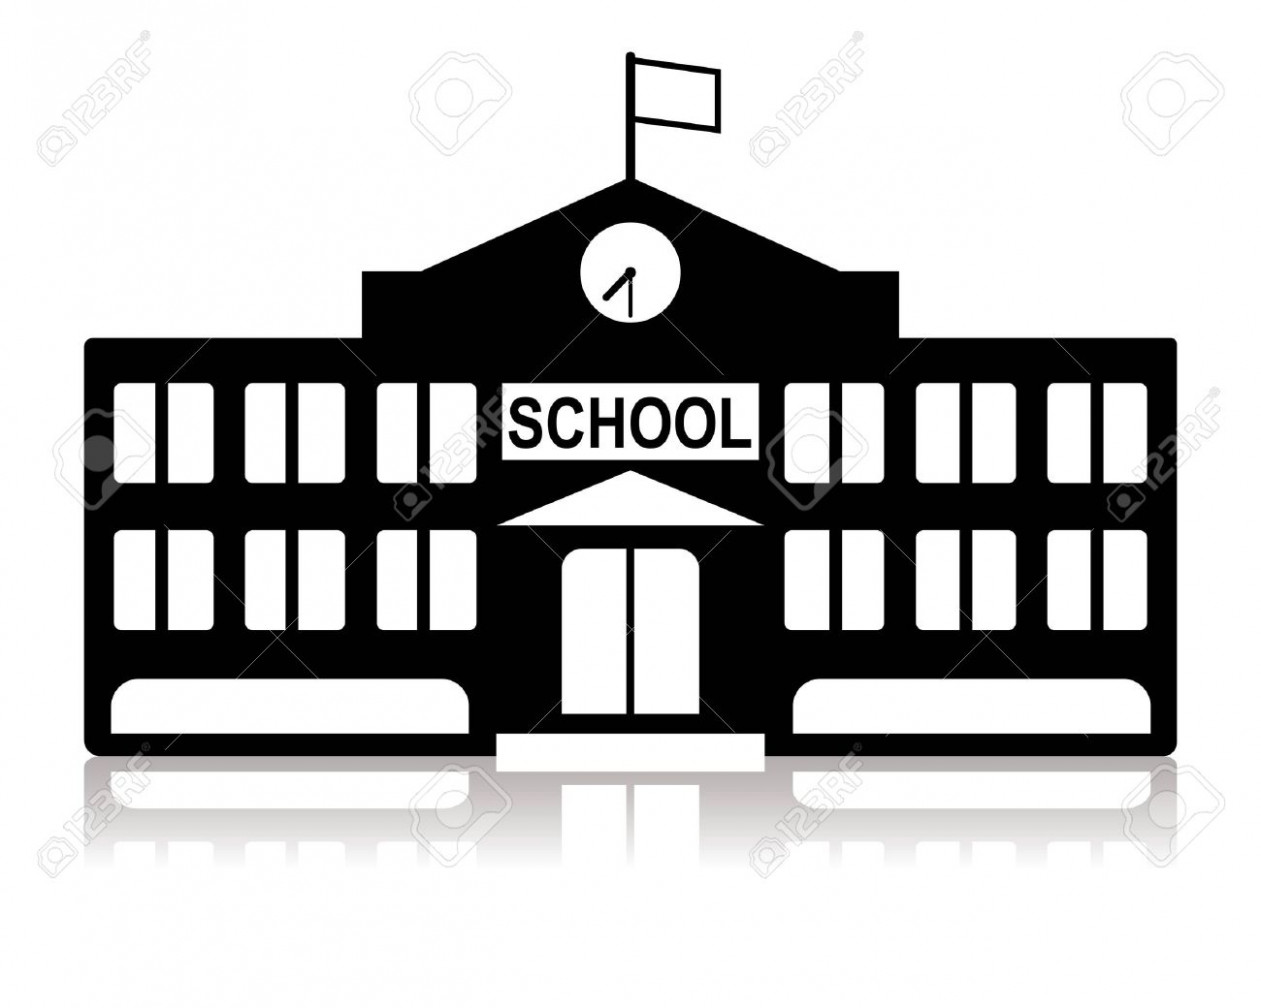 1261x1008 School Building Vector Image 18 Stockunlimited School Building